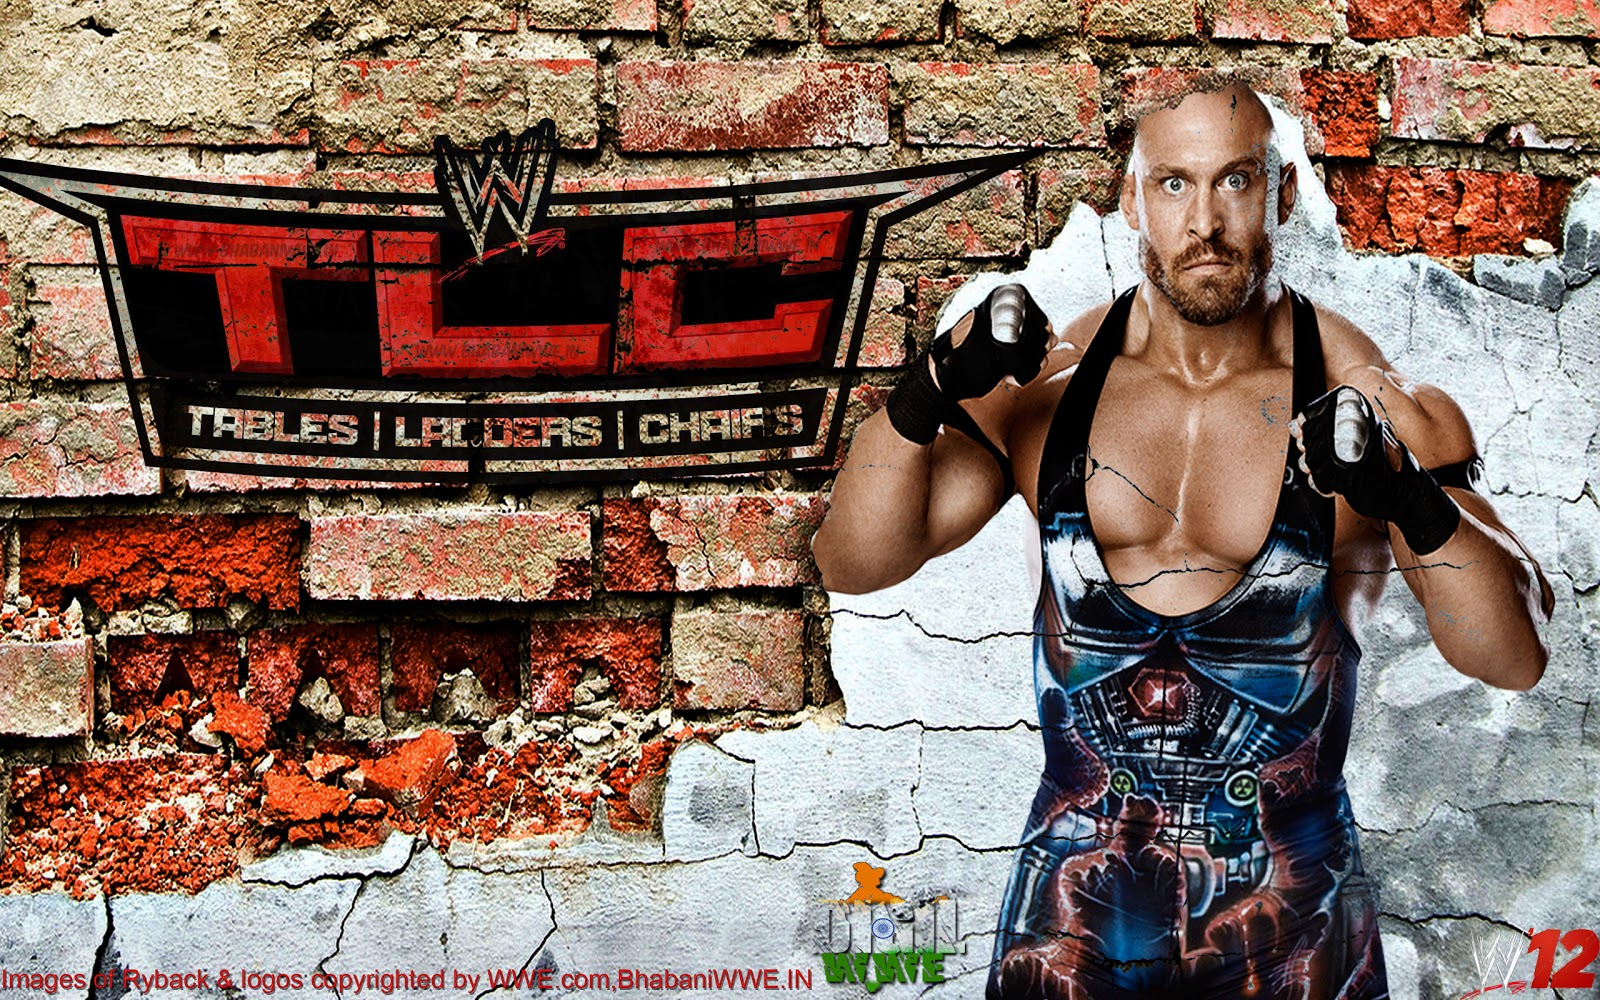 http://4.bp.blogspot.com/-6YF1Jz6_njo/UK-vg77AVWI/AAAAAAAABJY/Bz-f2gVT9cg/s1600/WWE+TLC+UnOfficial+Wallpaper+feat+Ryback+Designed+by+DigilWWE+in+BhabaniWWE1+(2).jpg